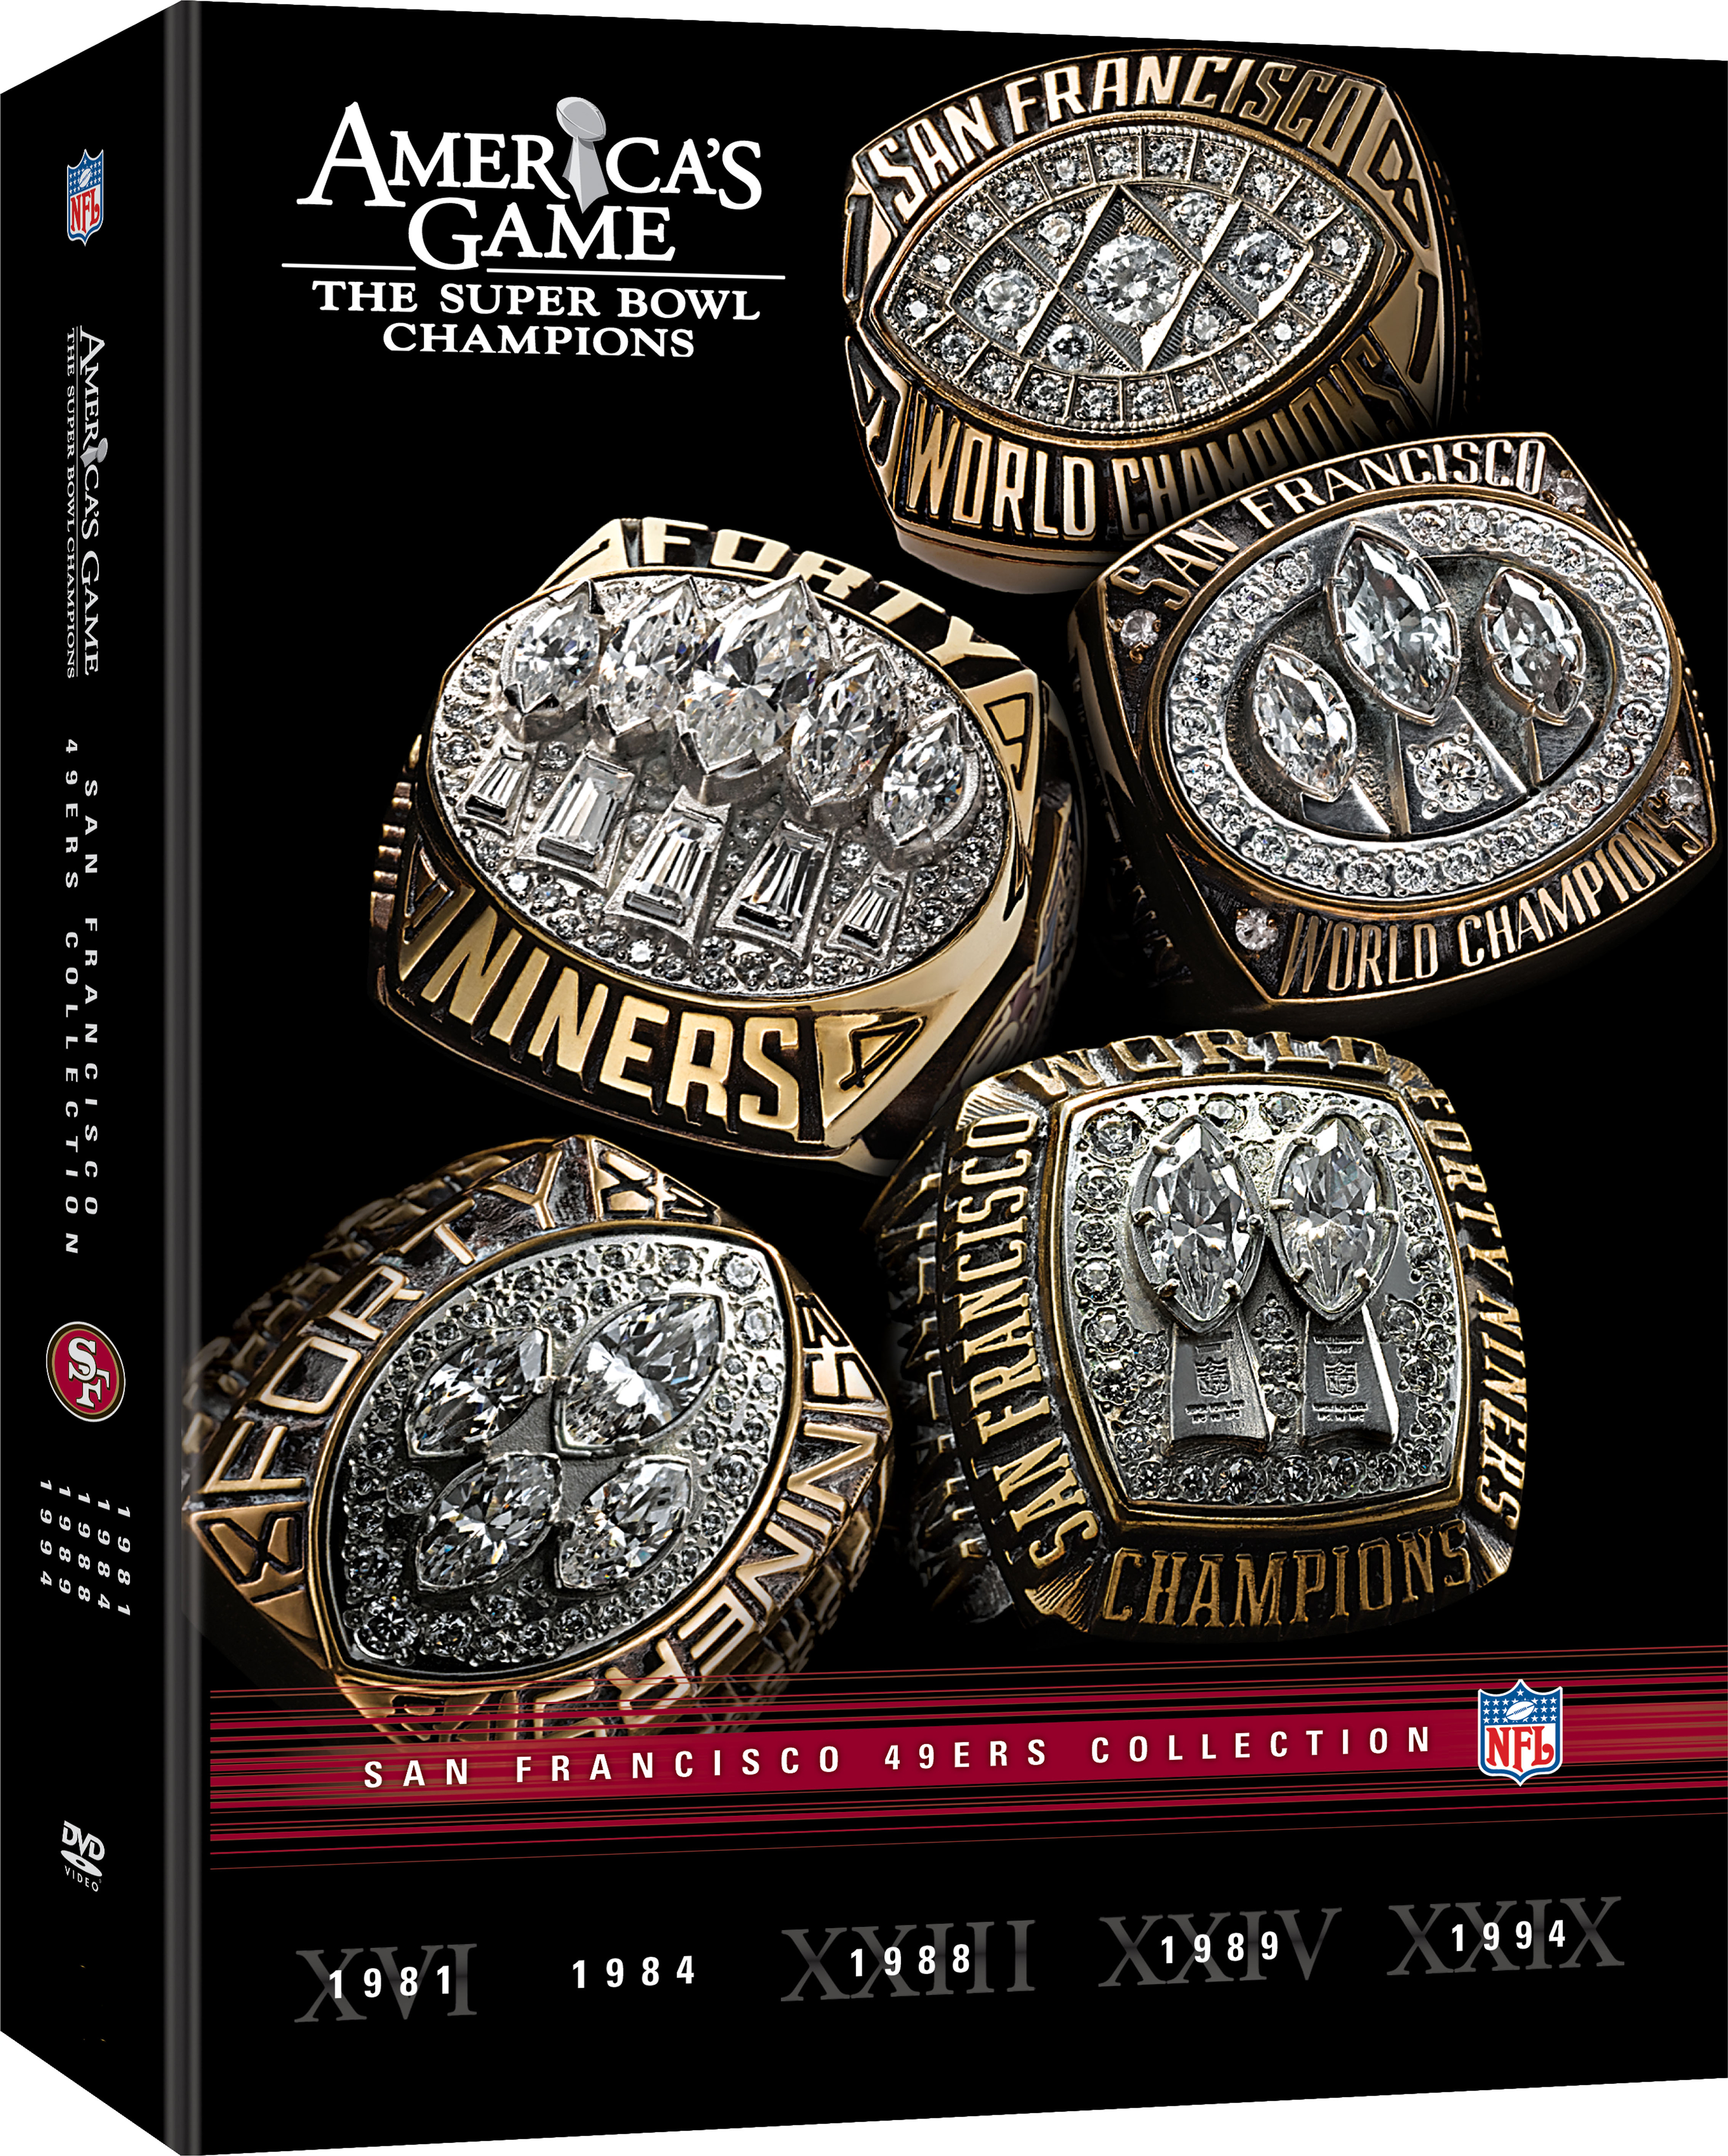 Americas game san francisco 49ers collection nfl productions americas game san francisco 49ers collection voltagebd Choice Image